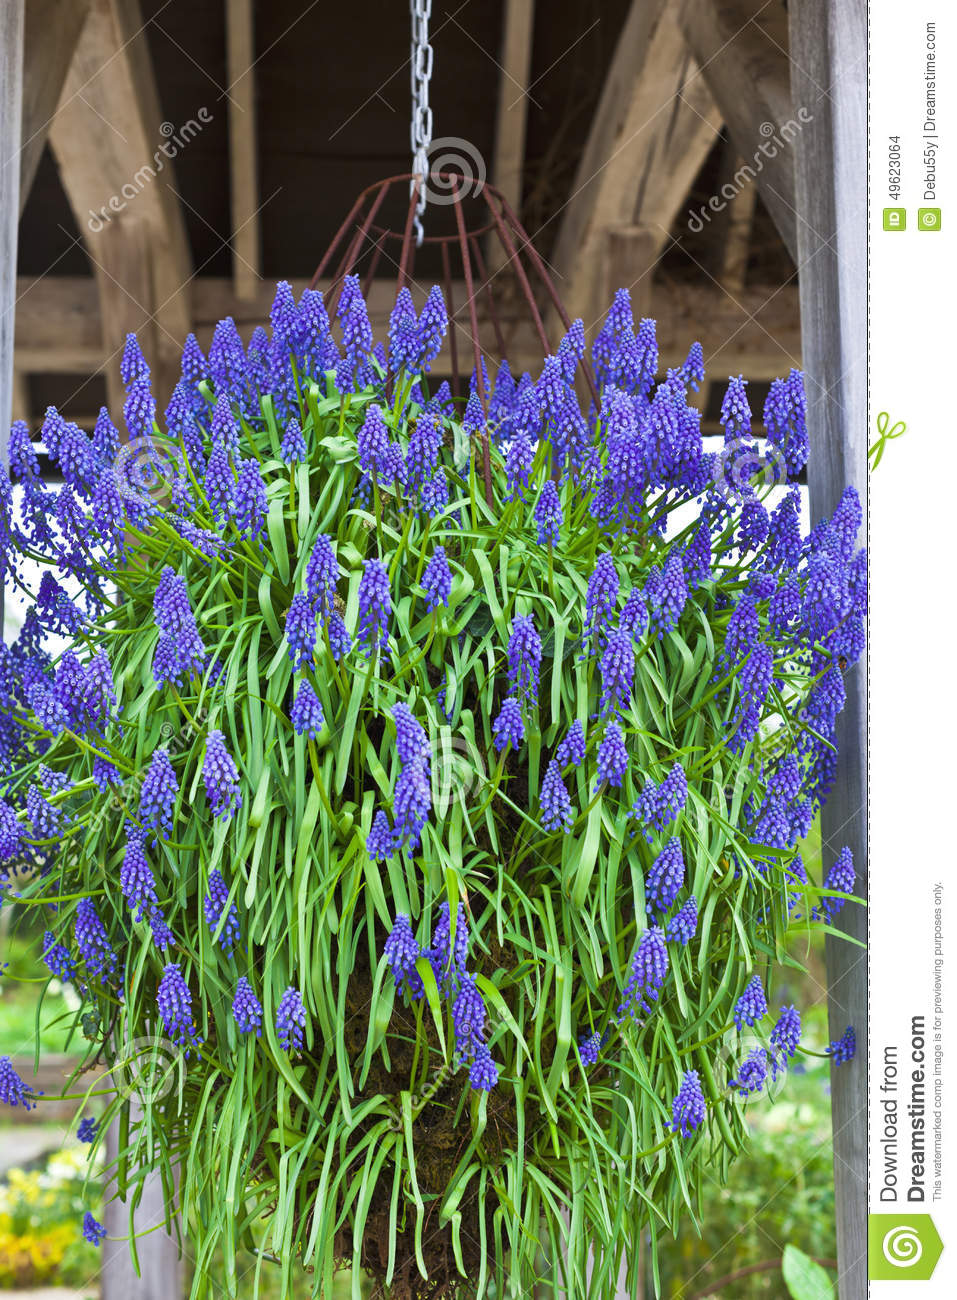 Hanging Basket With Blue Flowers Stock Photo Image